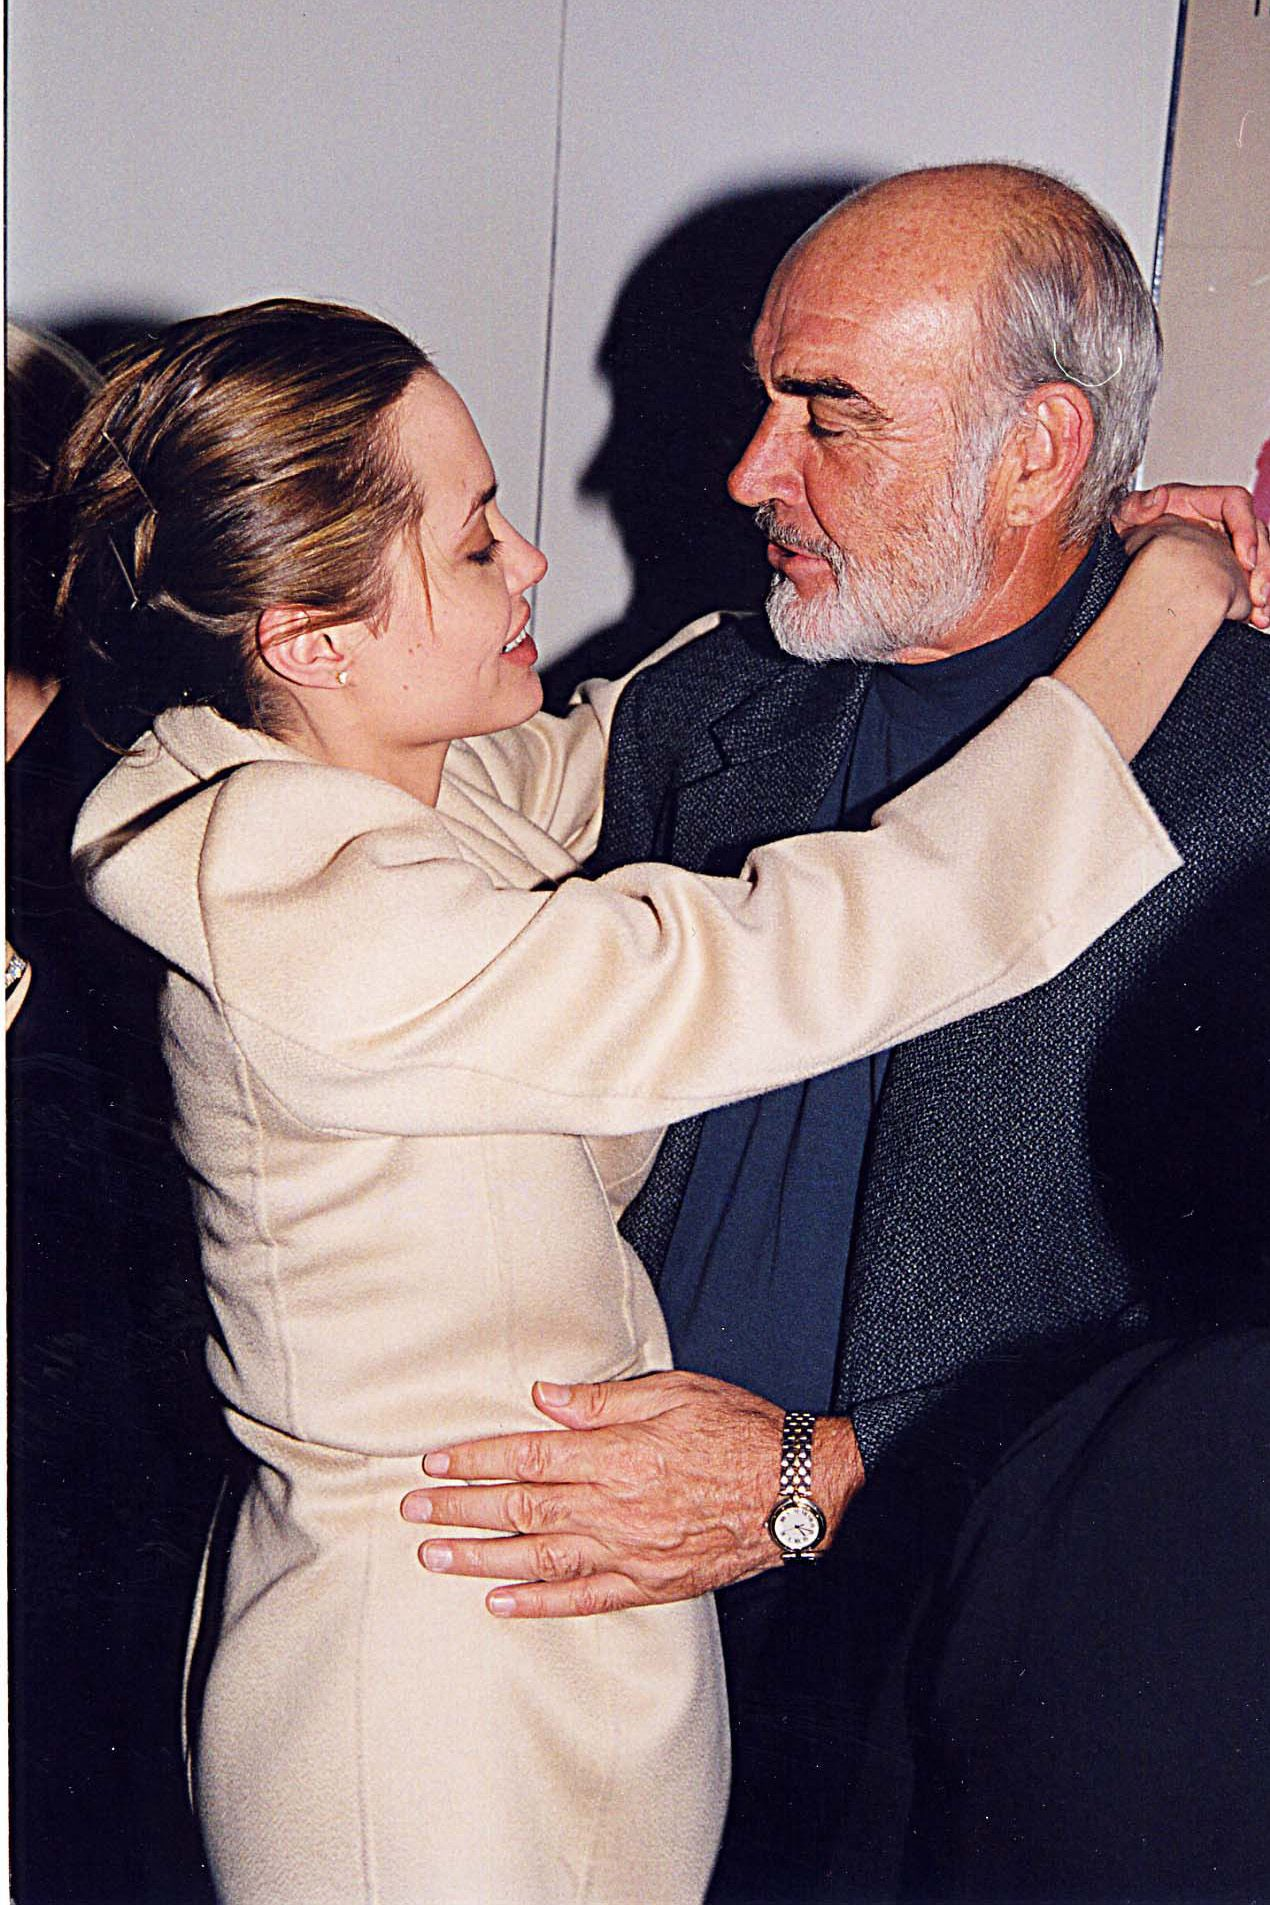 Angelina Jolie &amp&#x3B; Sean Connery at the 1998 premiere of Playing by Heart in Los Angeles. (Photo by Jeff Kravitz/FilmMagic, Inc)